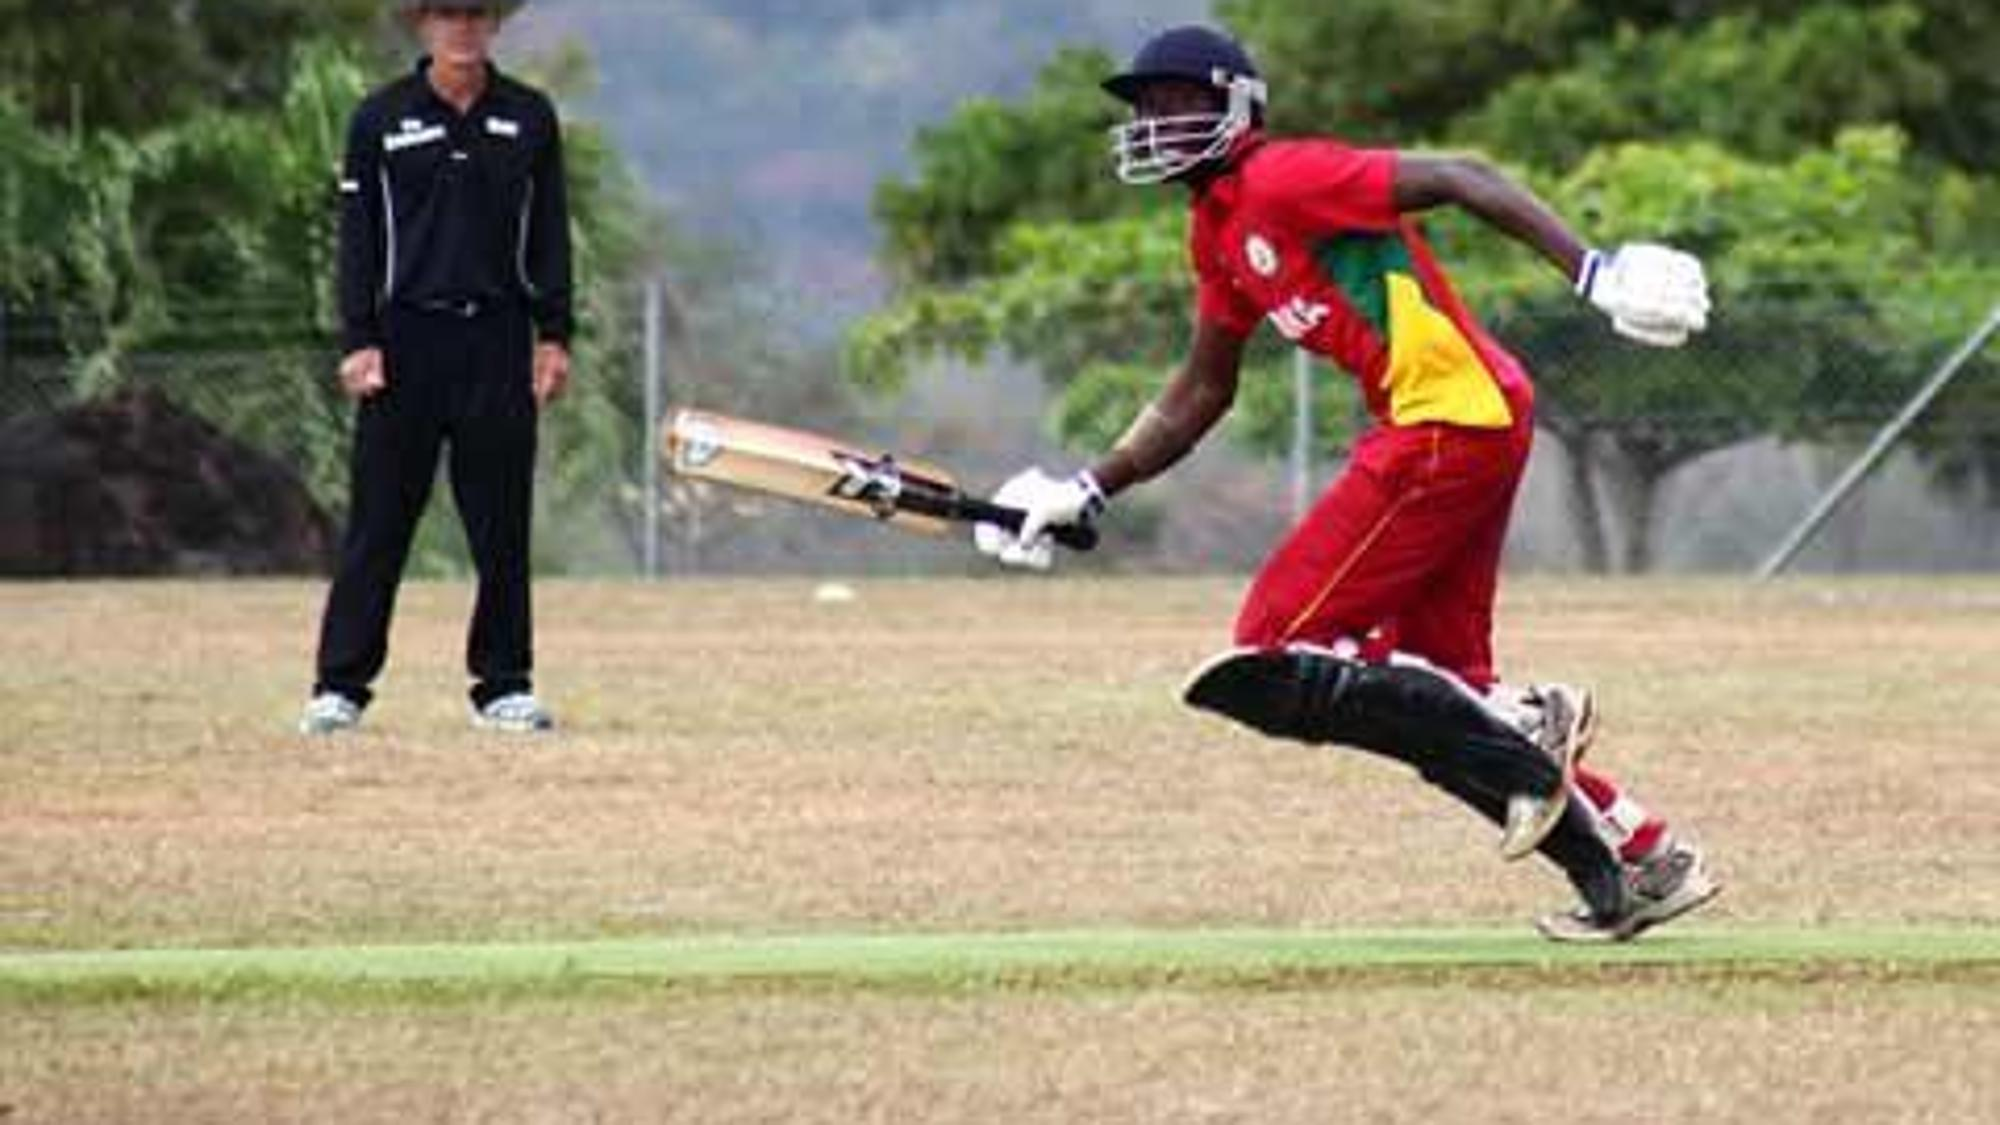 38405 Vanuatu v Ghana at Apia, ICC WCL Division Eight, 22 Sep, 2012